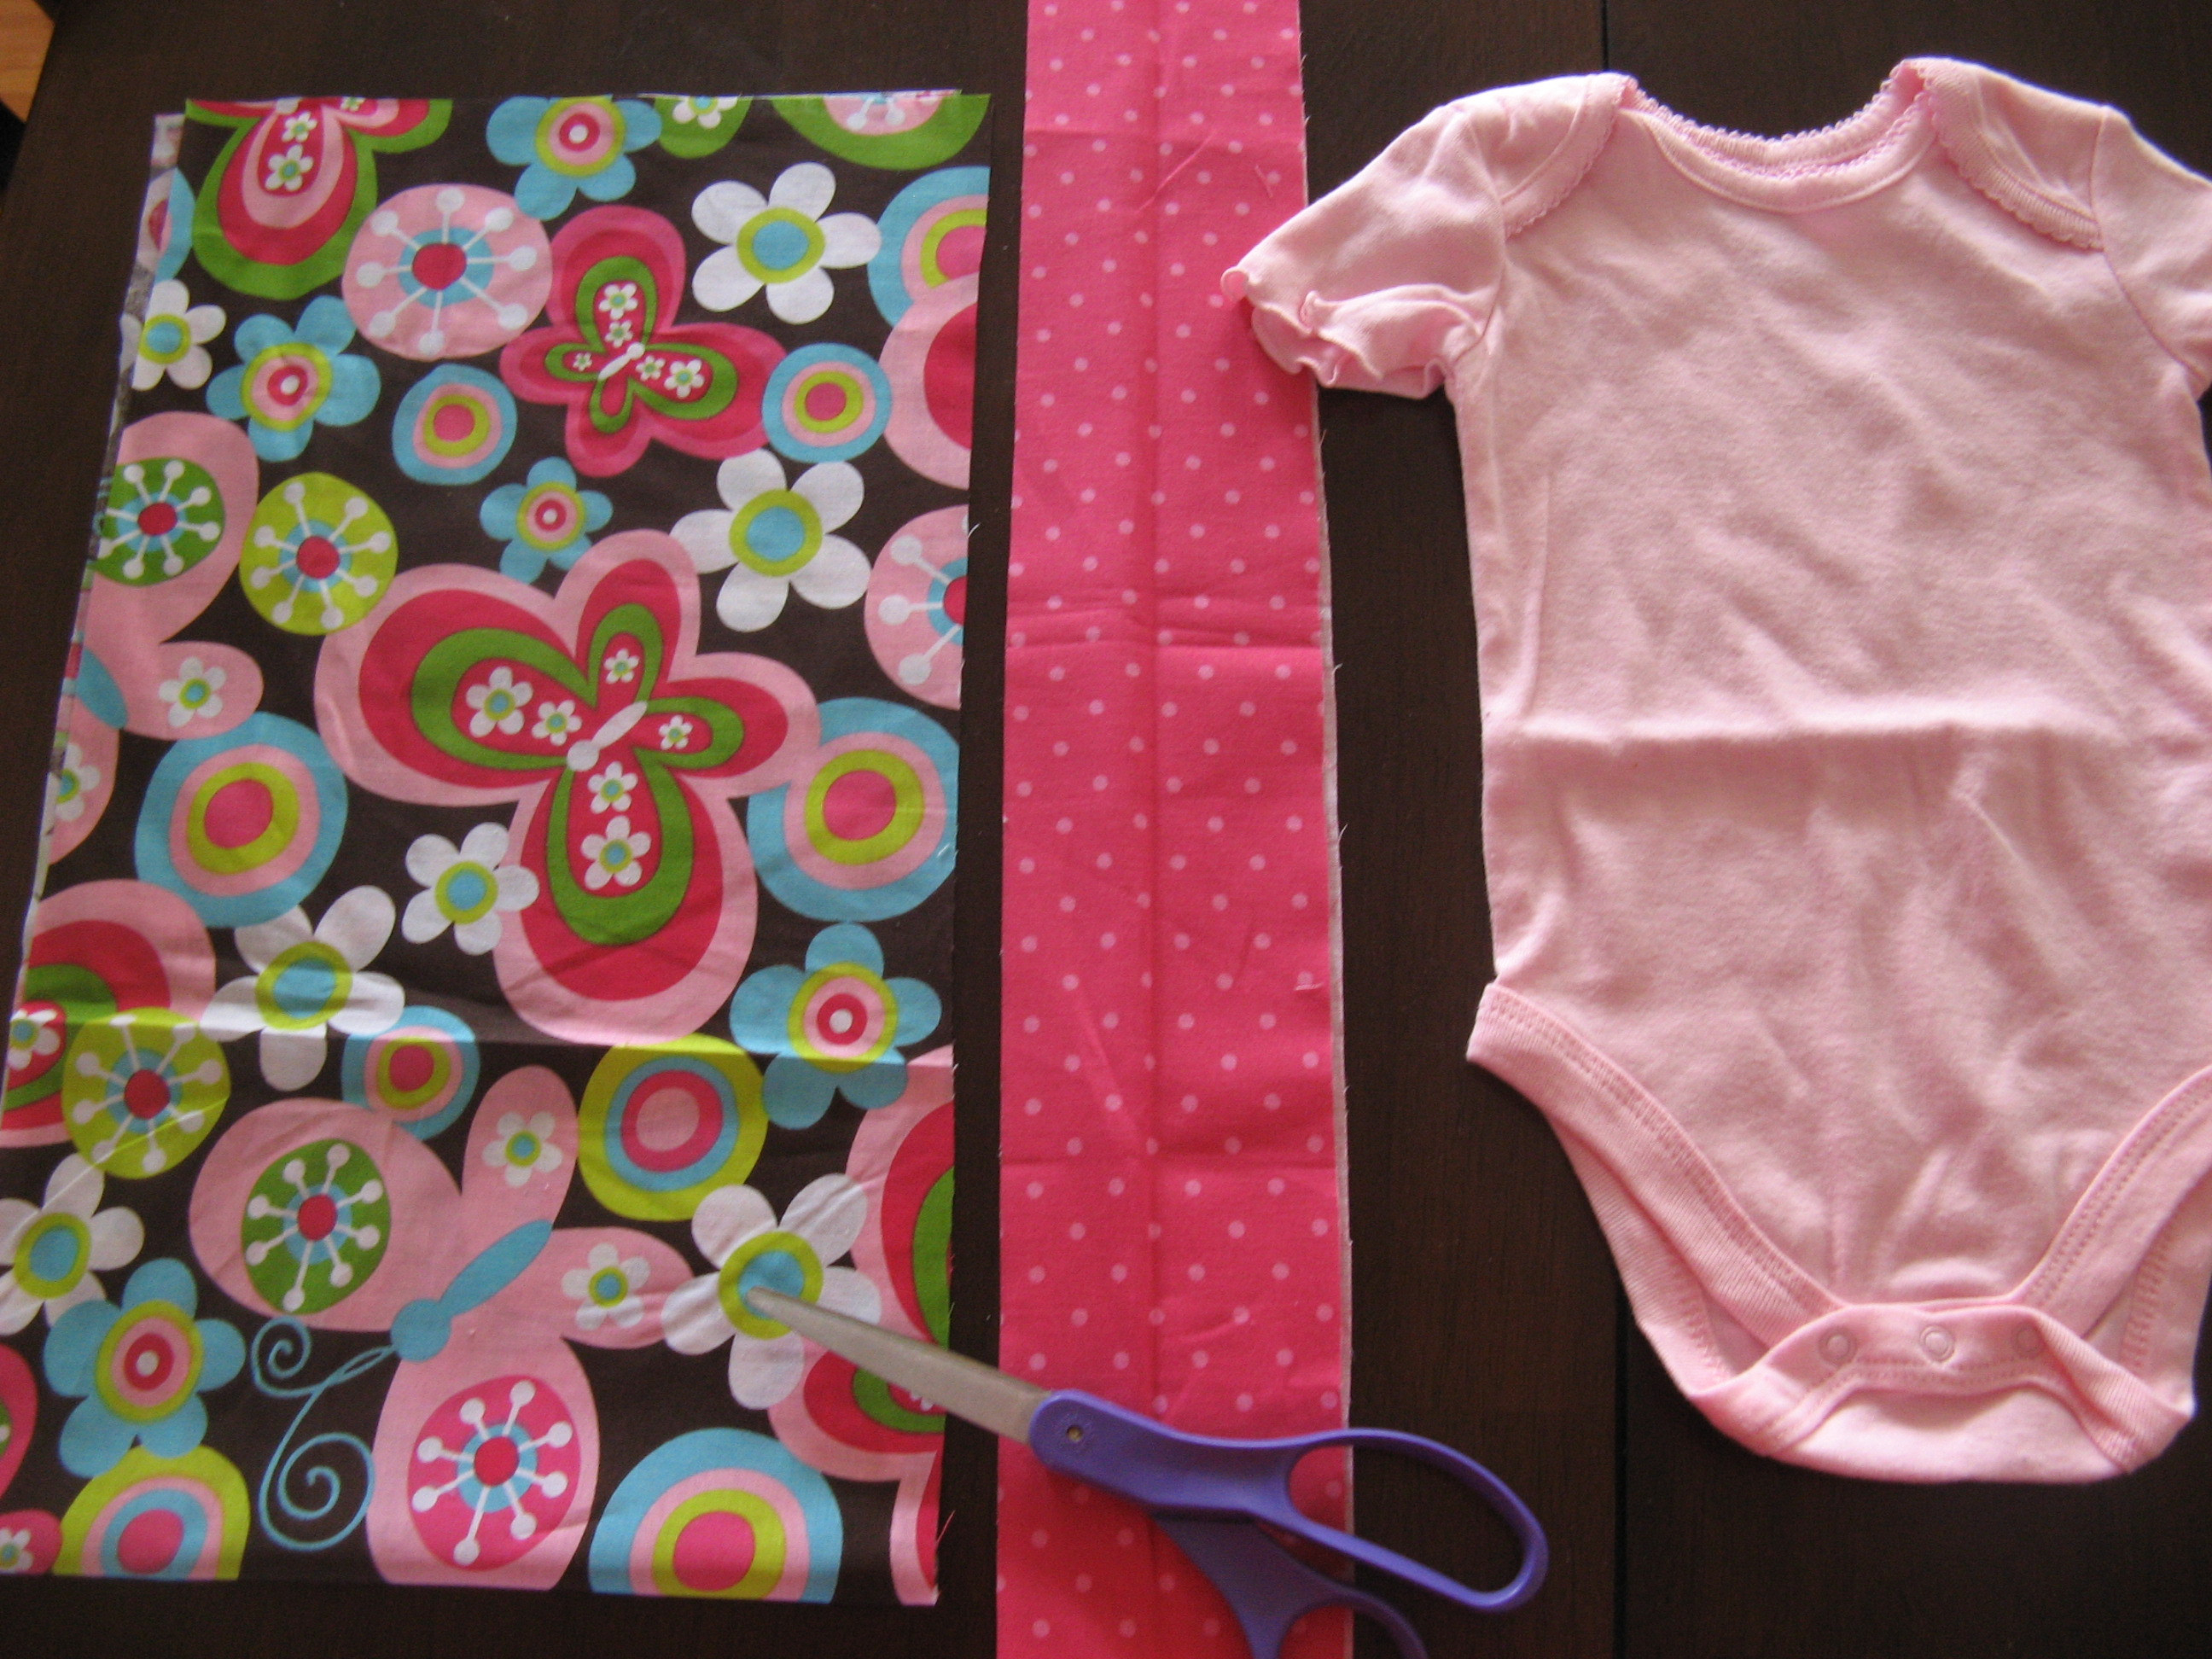 Best ideas about DIY Baby Dress . Save or Pin DIY baby dress Now.